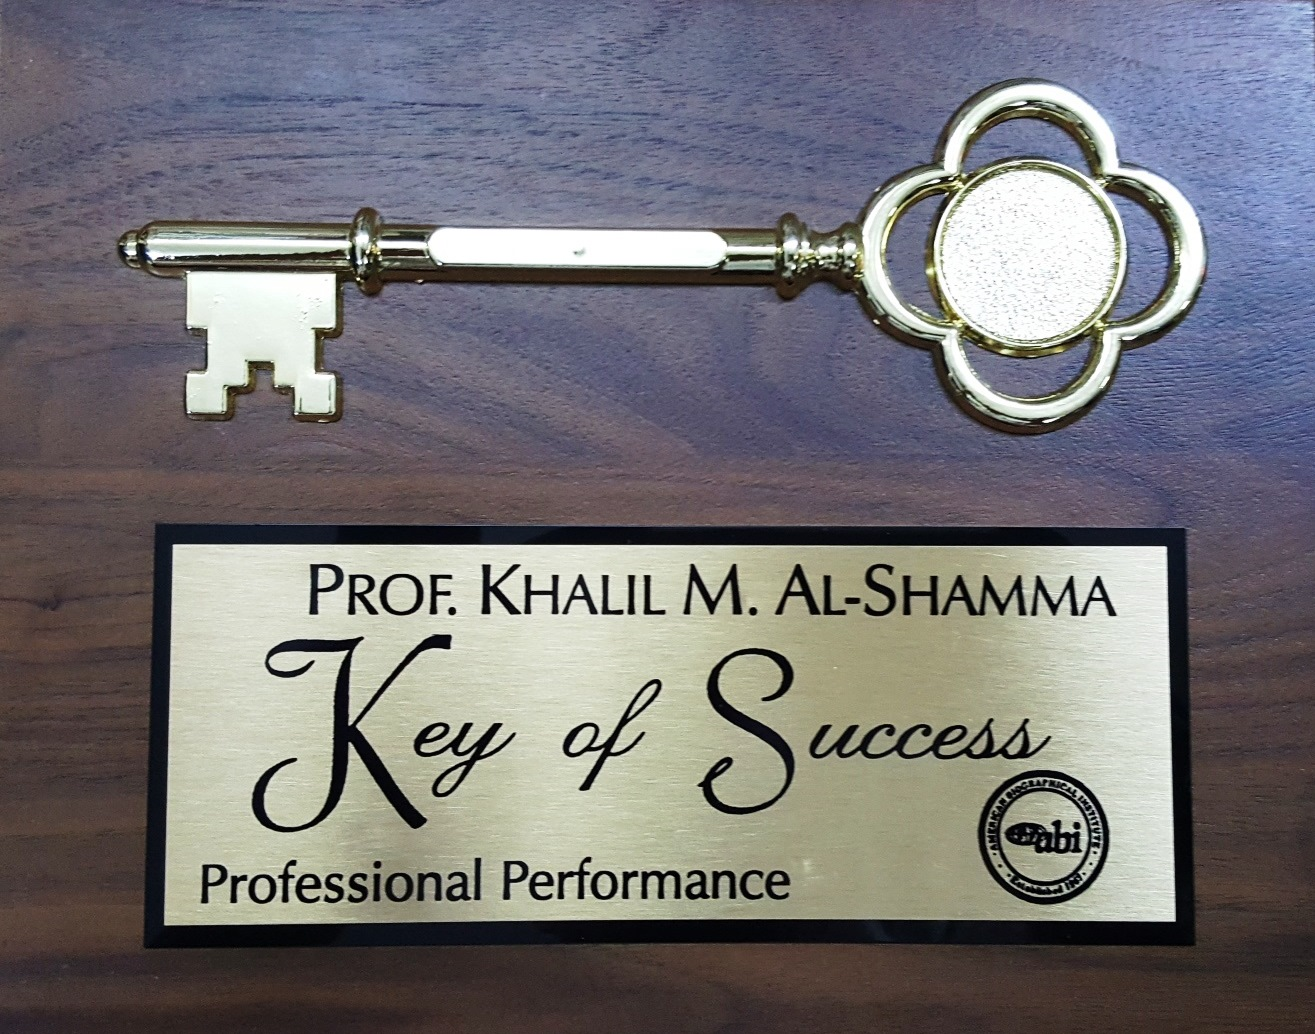 Keys of Success - Professional Performance